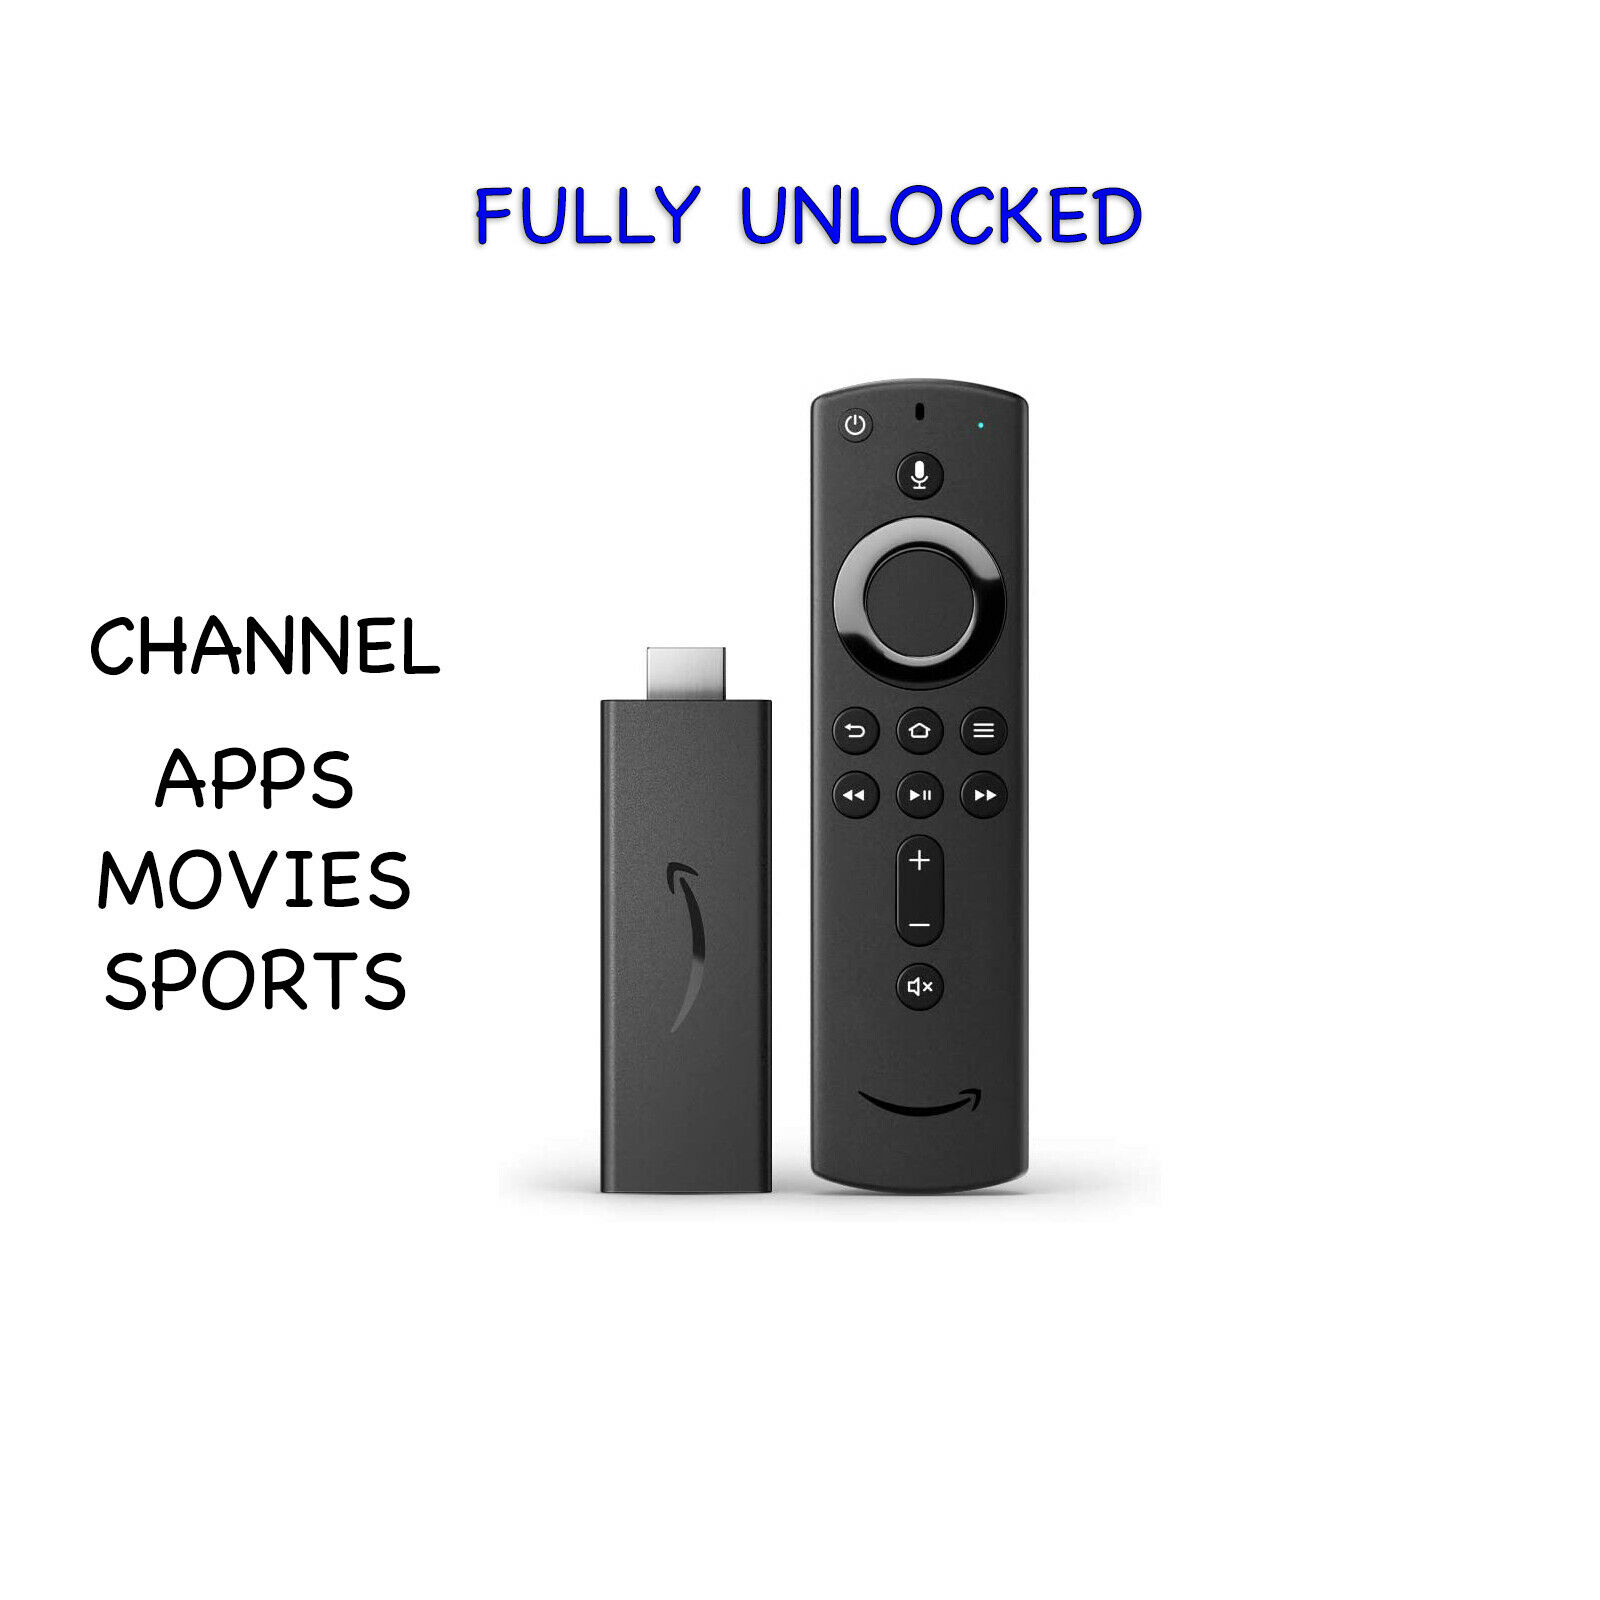 Unlocked Fire Stick Lite With Extra Movies Sports Apps Channels. Available Now for 69.99